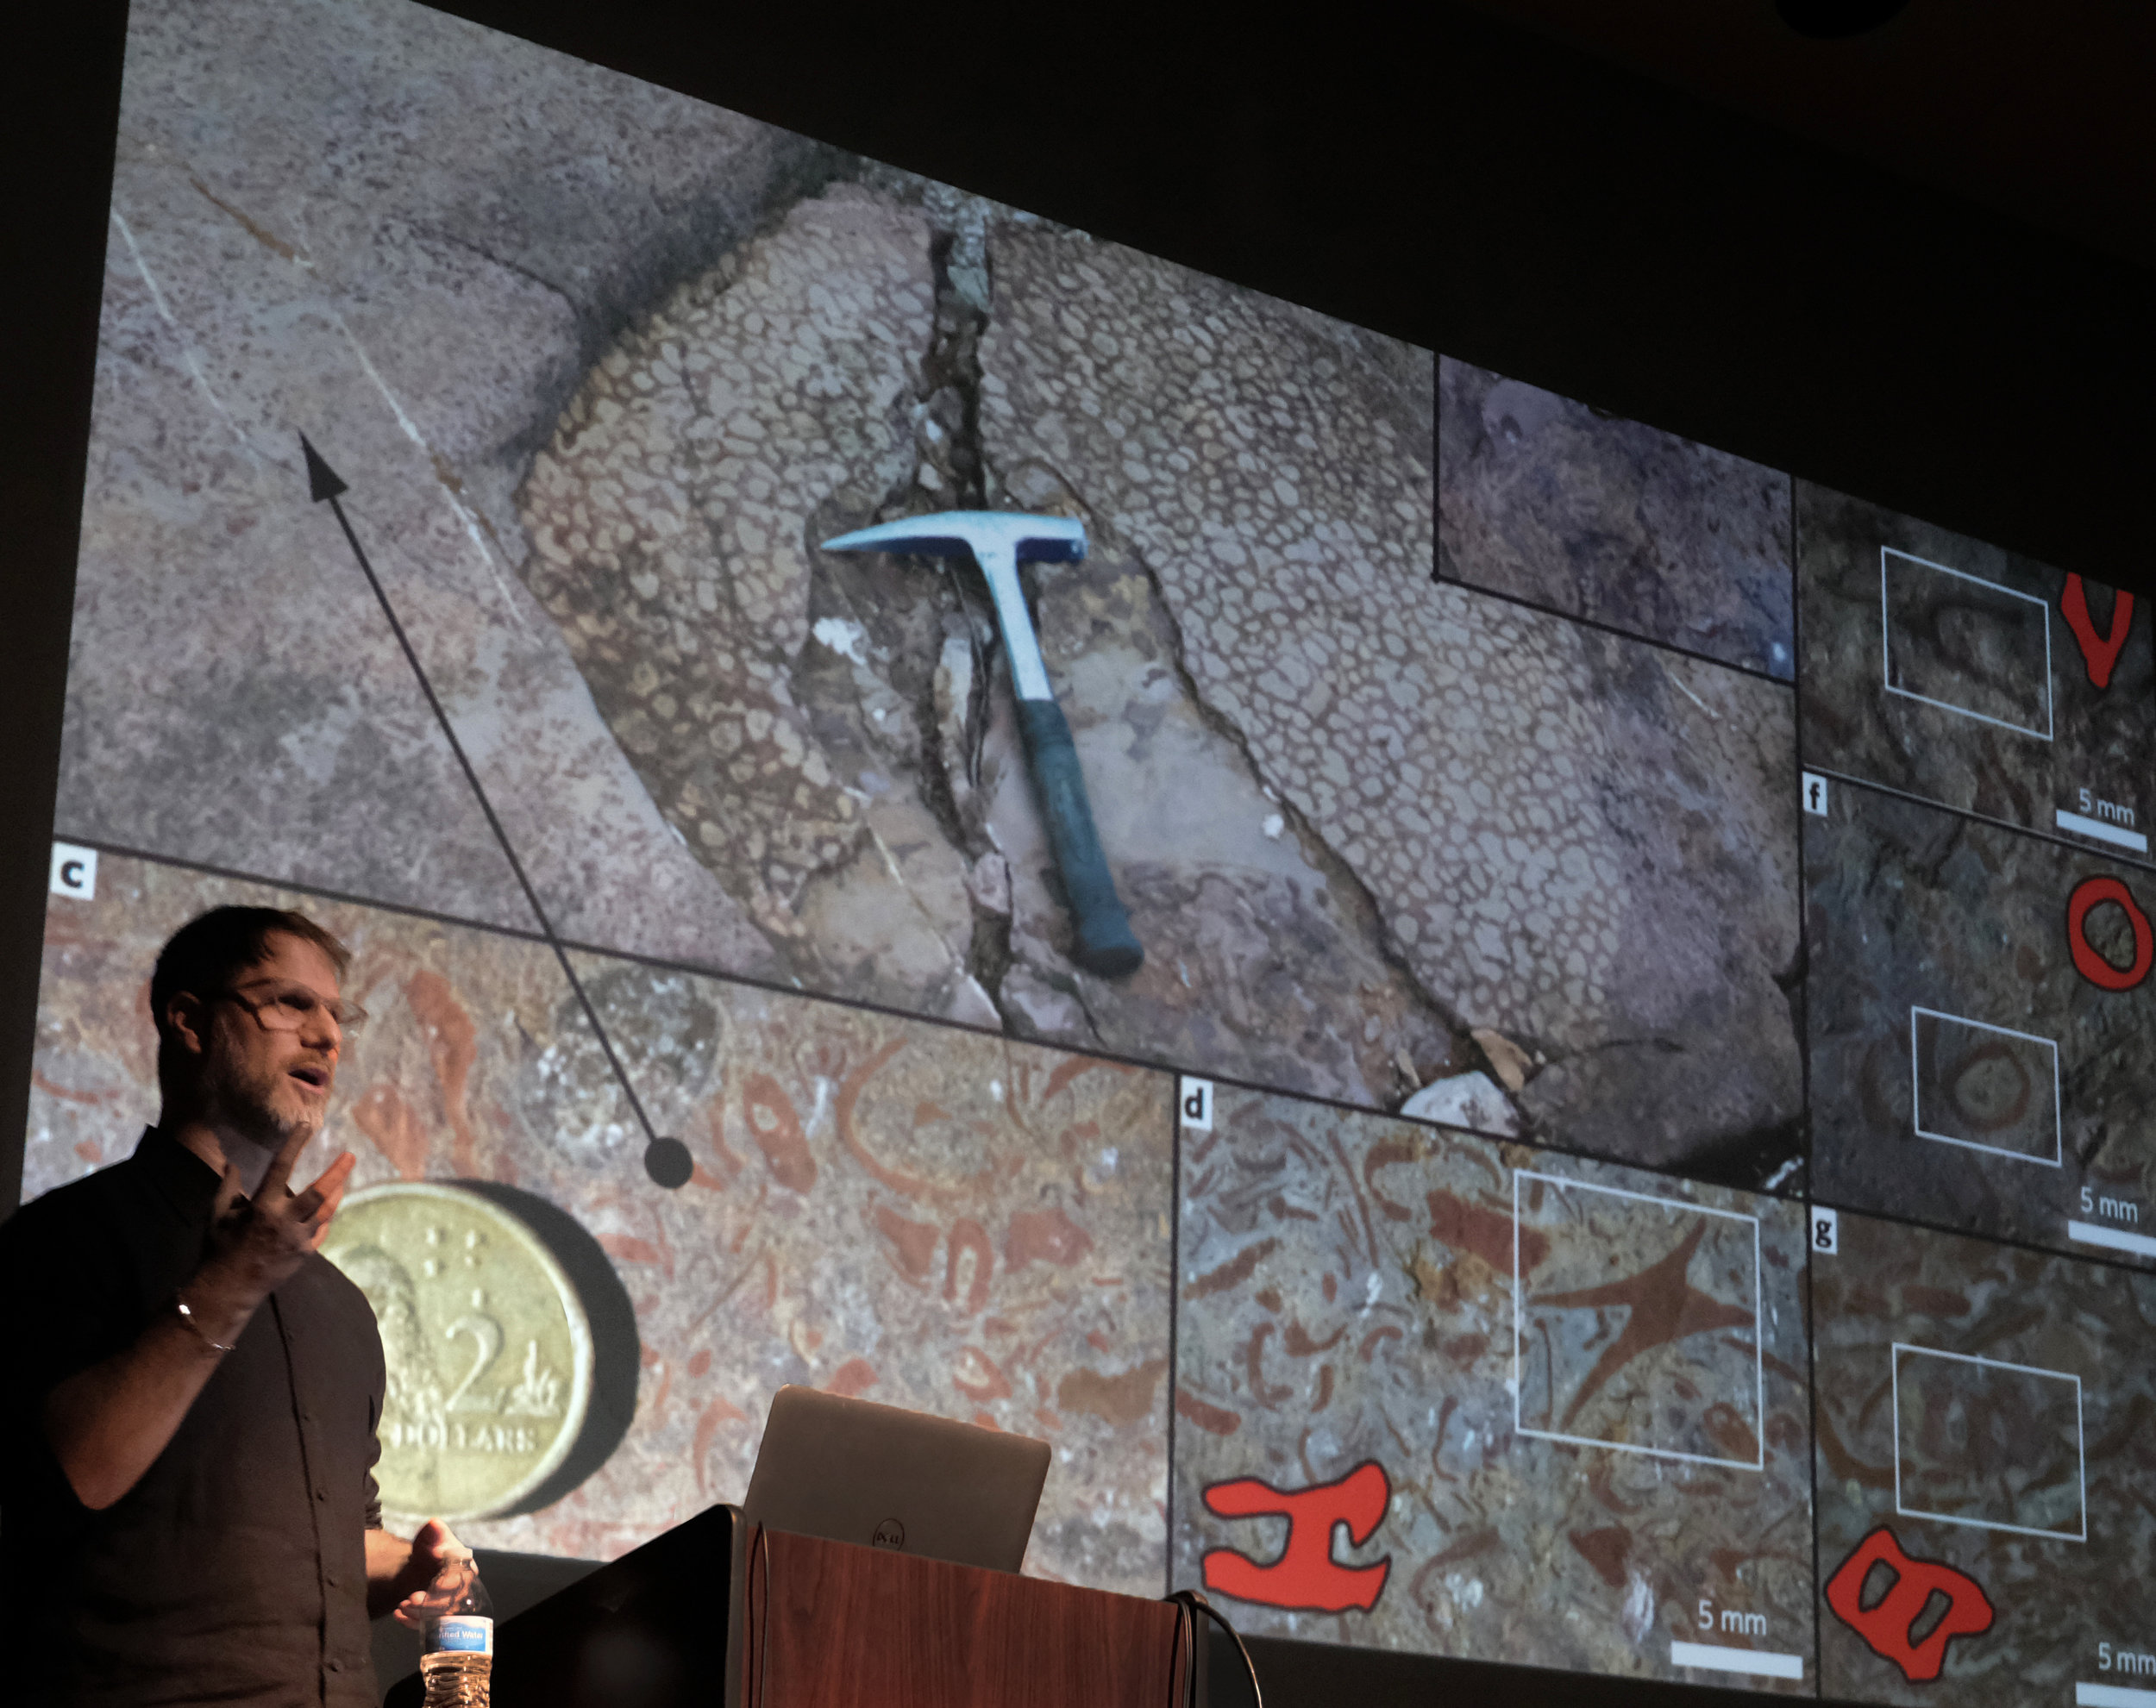 Brad Samuels, leader of SITU Research, shared his recent project work during the SoA Lecture Series event on February 11 at Kresge Theatre. Photo by Michael Powell.